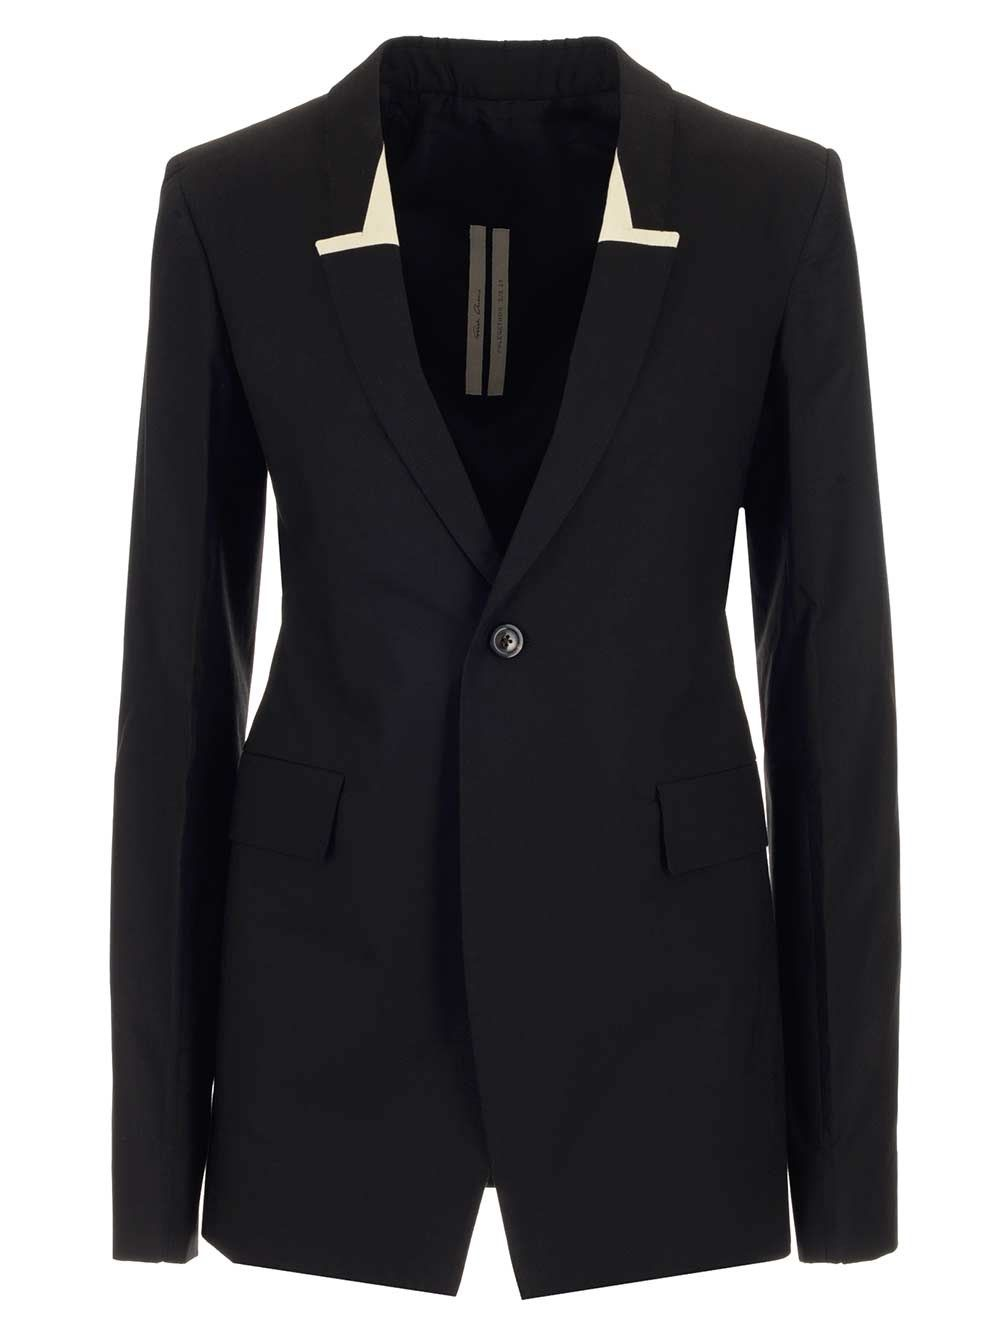 Rick Owens RICK OWENS WOMEN'S BLACK COTTON BLAZER